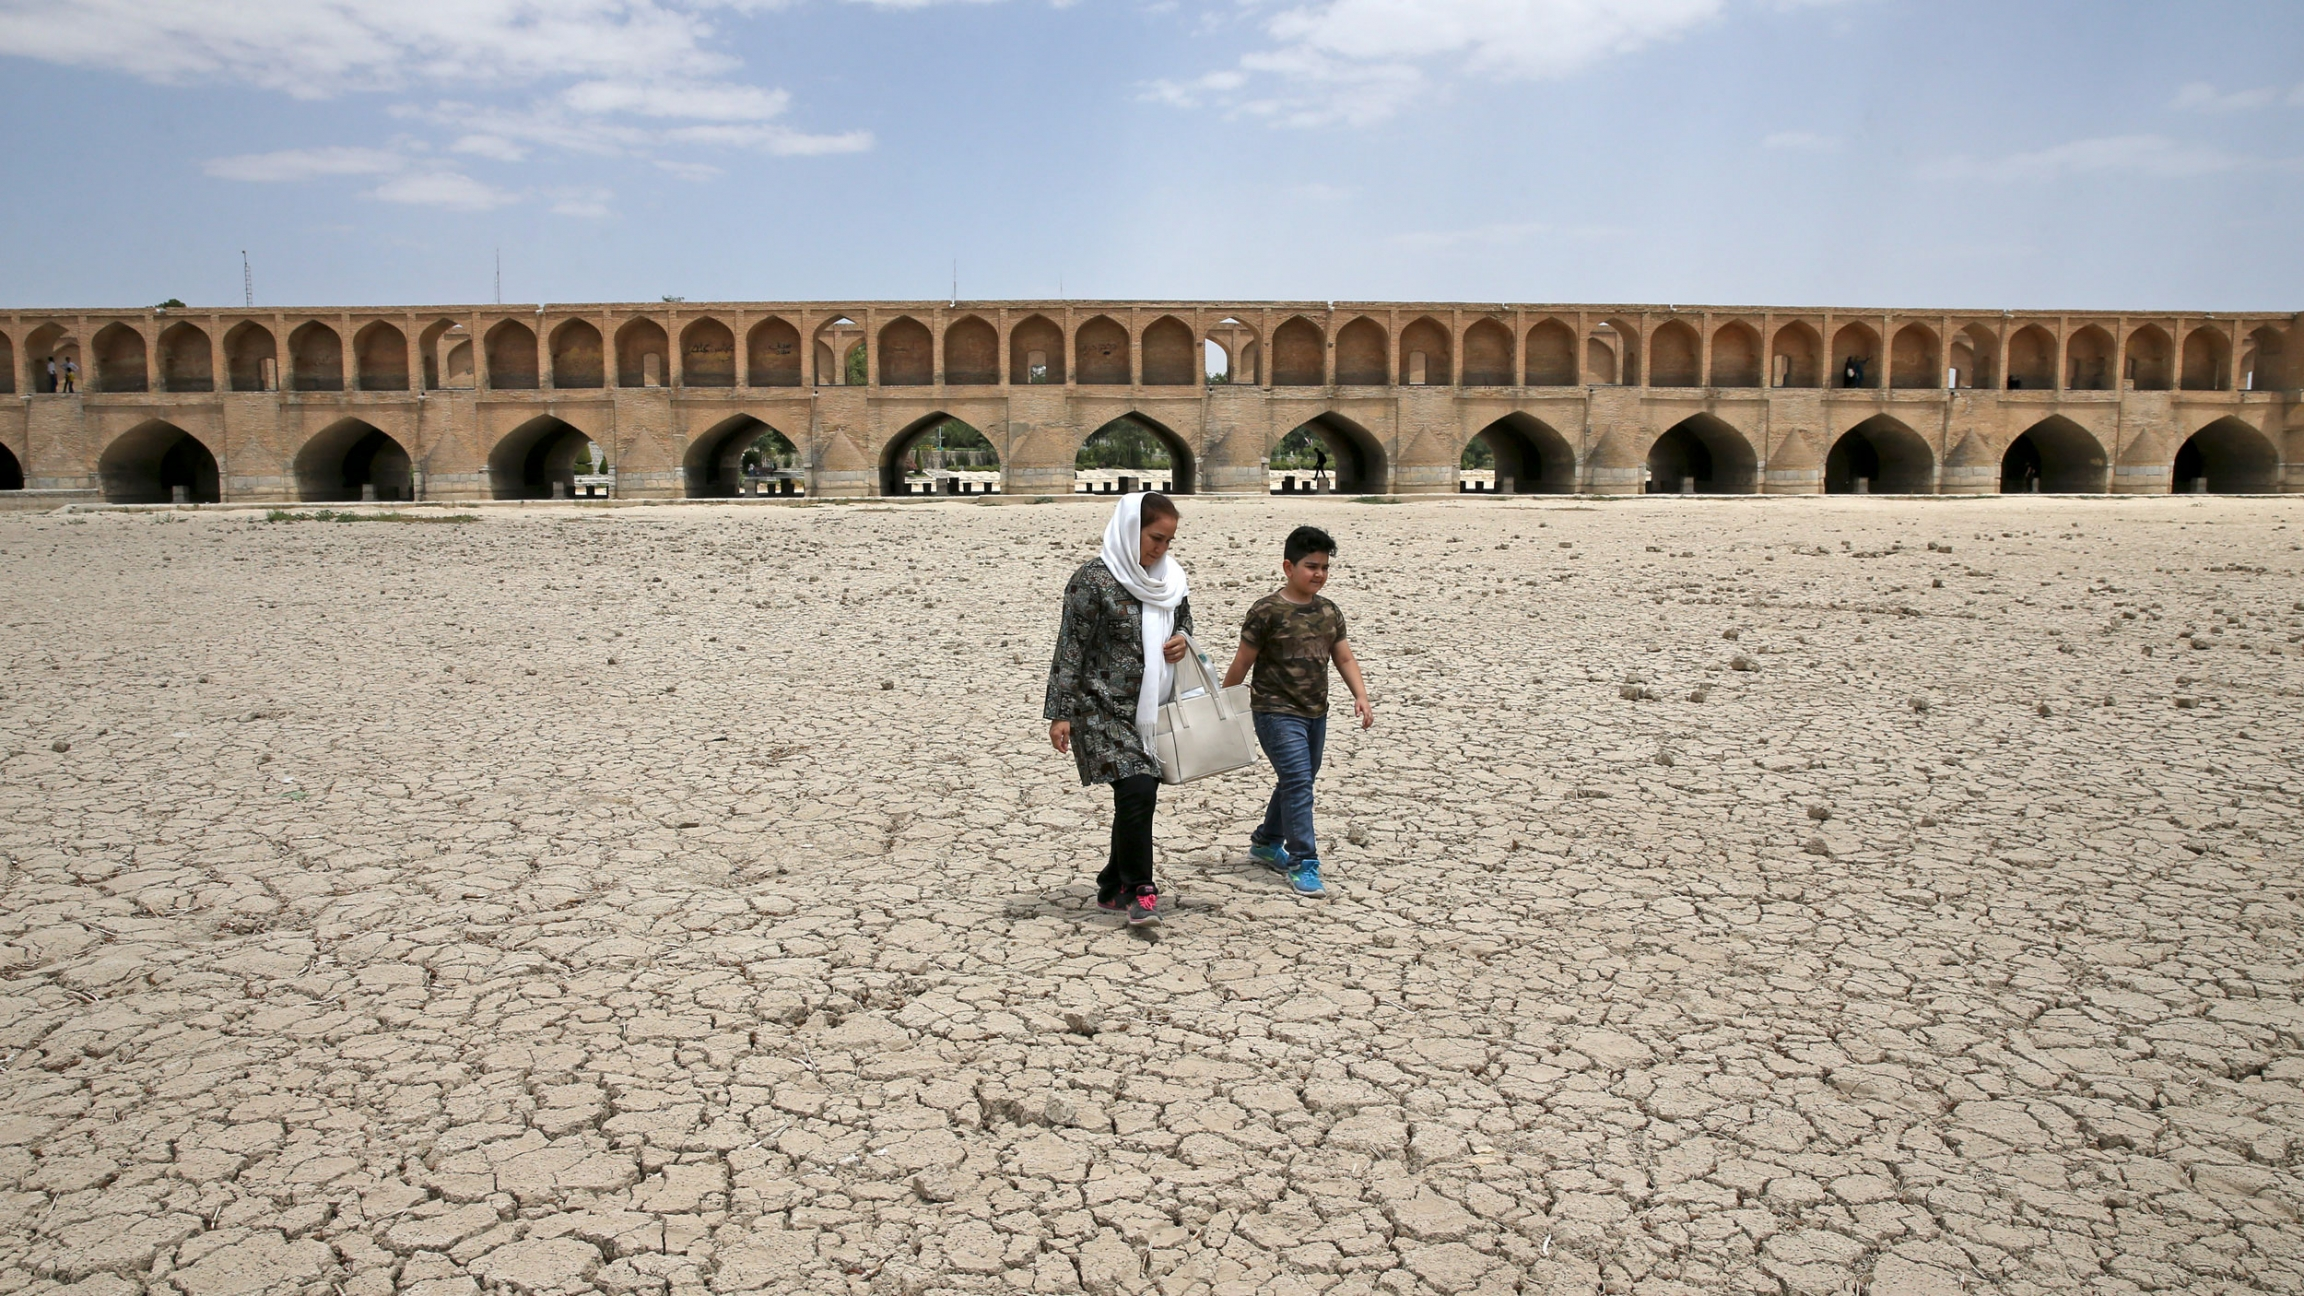 A woman and a boy walk on the dried up riverbed of the Zayandeh Roud river that no longer runs under the 400-year-old Si-o-seh Pol bridge, named for its 33 arches, in Isfahan, Iran